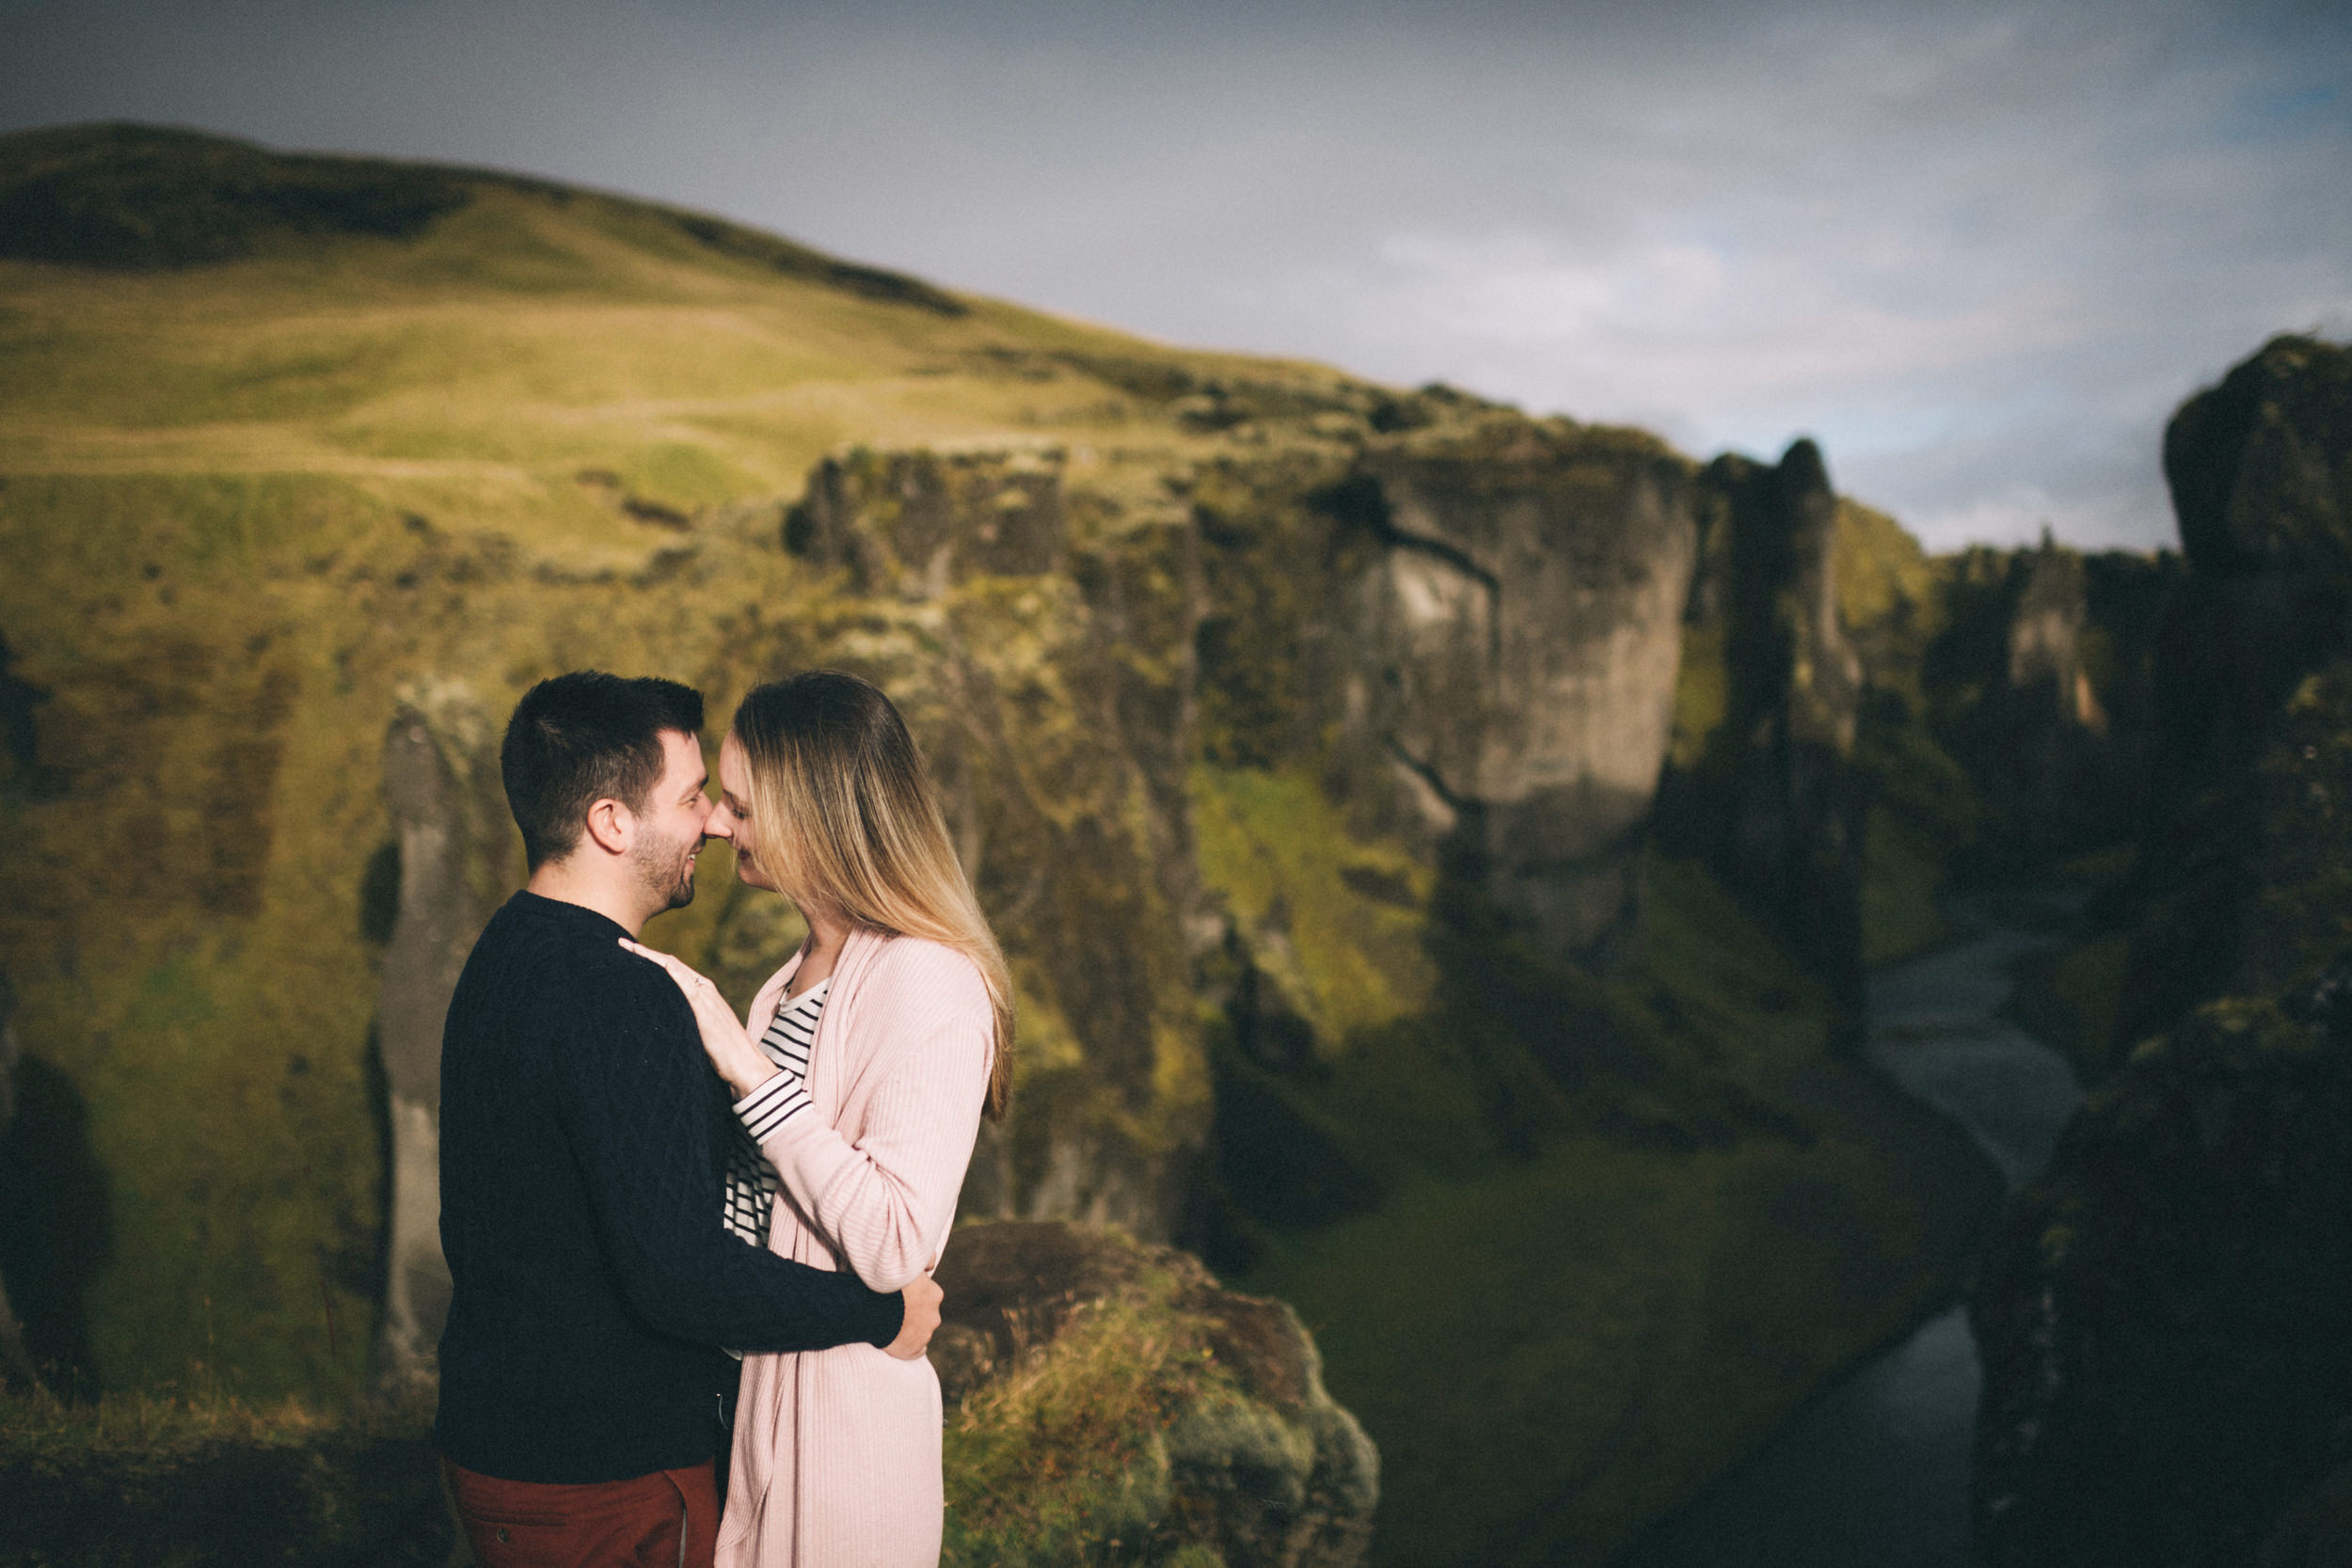 Sarah-Katherine-Davis-Photography-Iceland-Adventure-Elopement-Photographer-Louisville-Kentucky-Wedding-Photographer-Travel-Vik-Beach-Engagement-Session-Cozy-Iceland-South-Coast-11edit.jpg